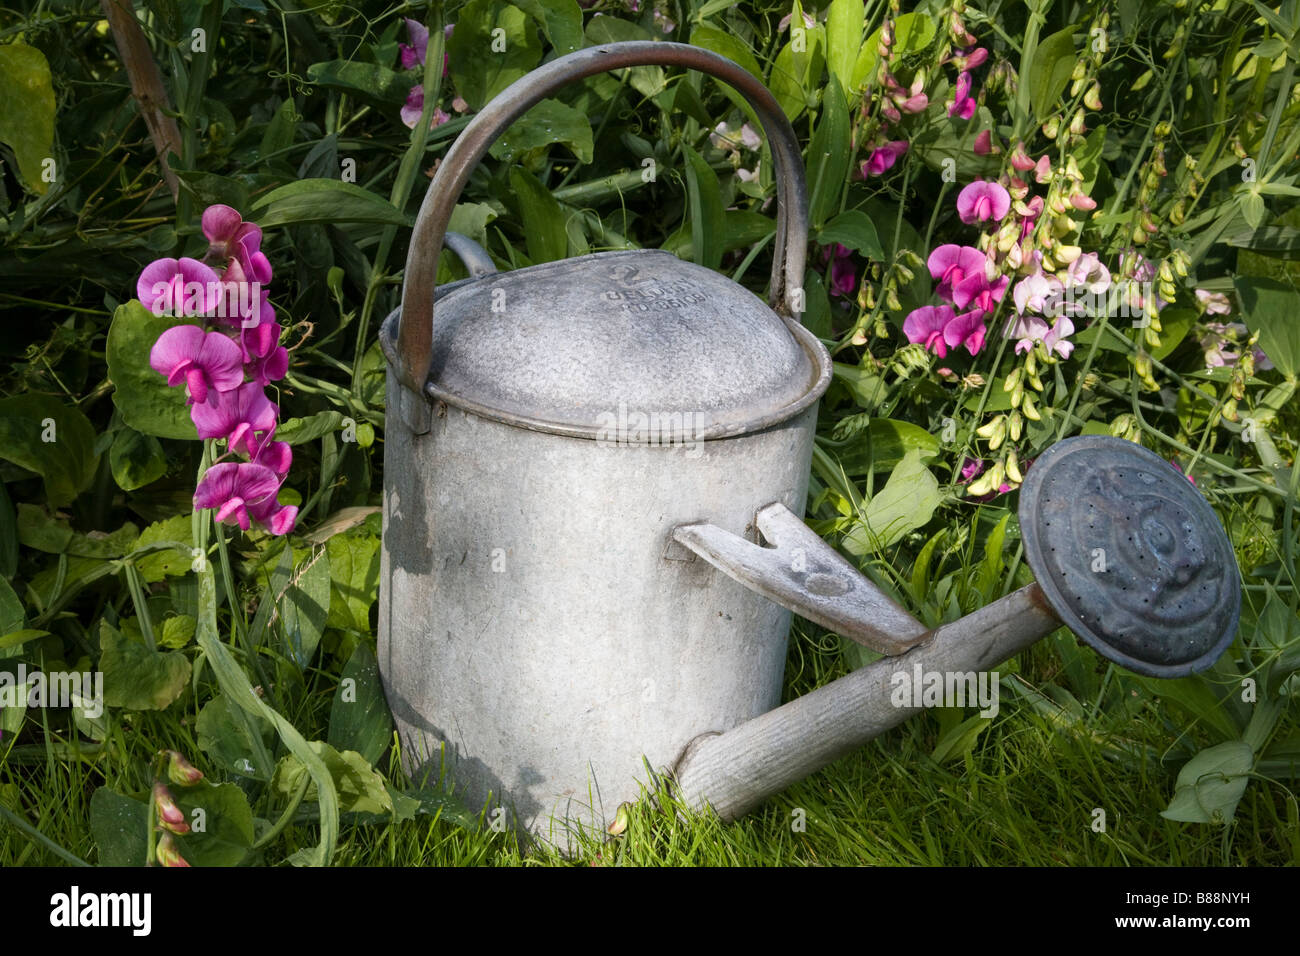 Galvanized watering can amidst sweet peas in a Surrey garden, Surrey, England. - Stock Image